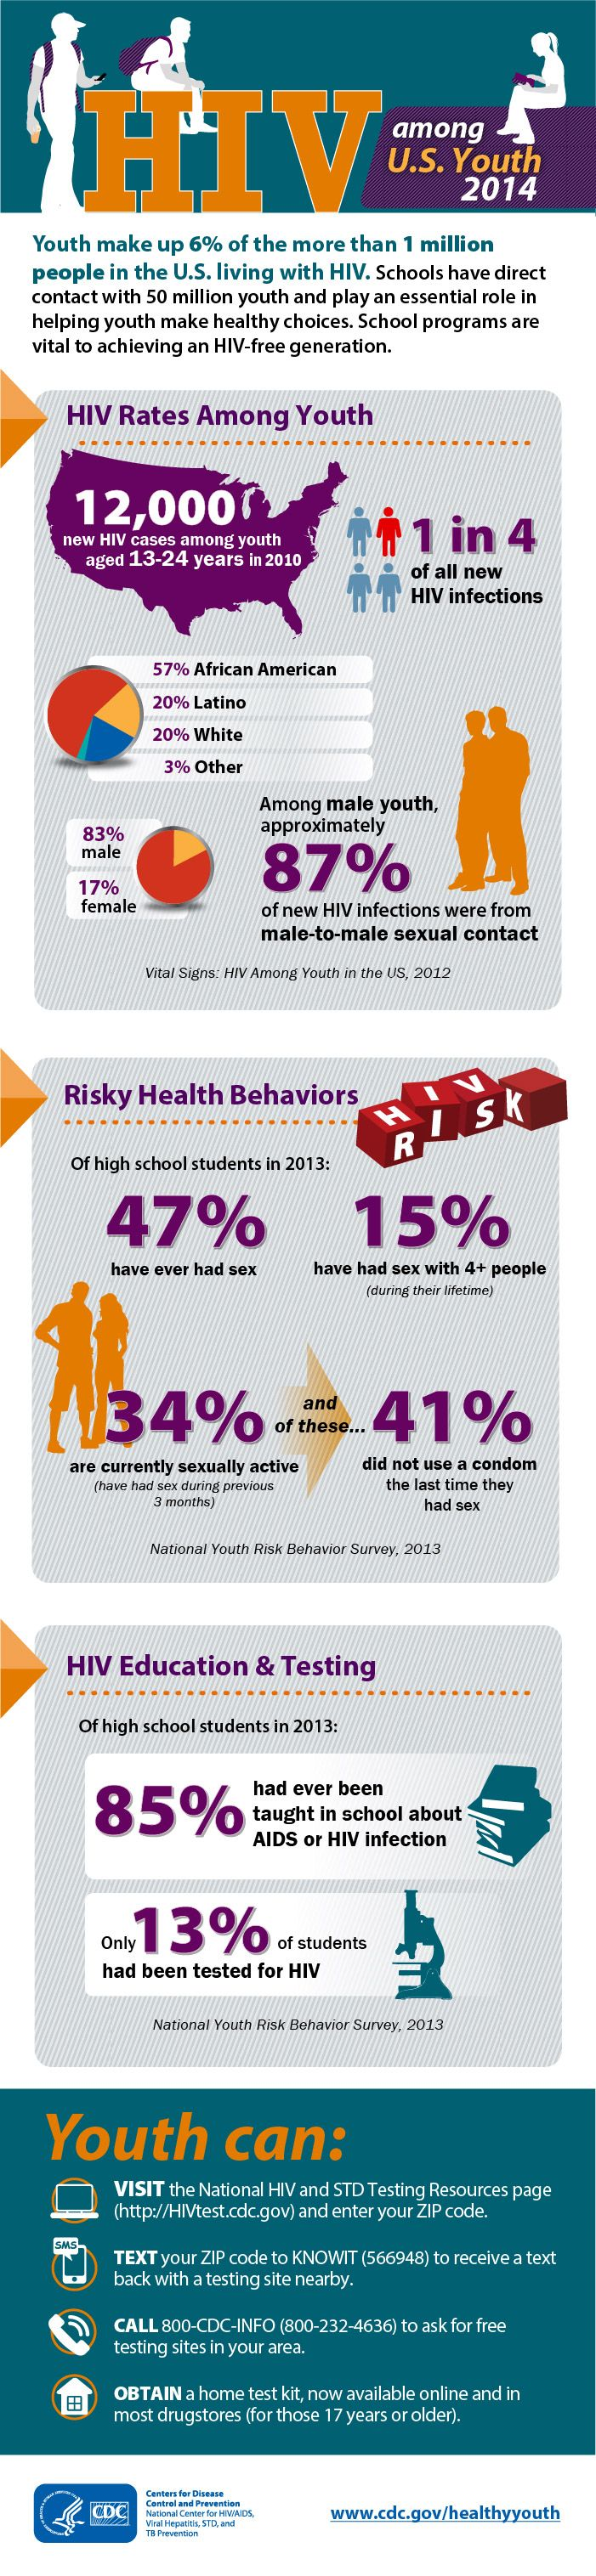 Many people become infected with #HIV as teens or young adults. School programs can play a vital role in preventing HIV among youth and help the US reach an HIV-free generation. http://1.usa.gov/1hs8X1gSexual Health, Young Adult, Healthcare Education, Healthcare Infographic, Schools Programs, Hiv Fre Generation, Hiv Aid, Health Education, Public Health